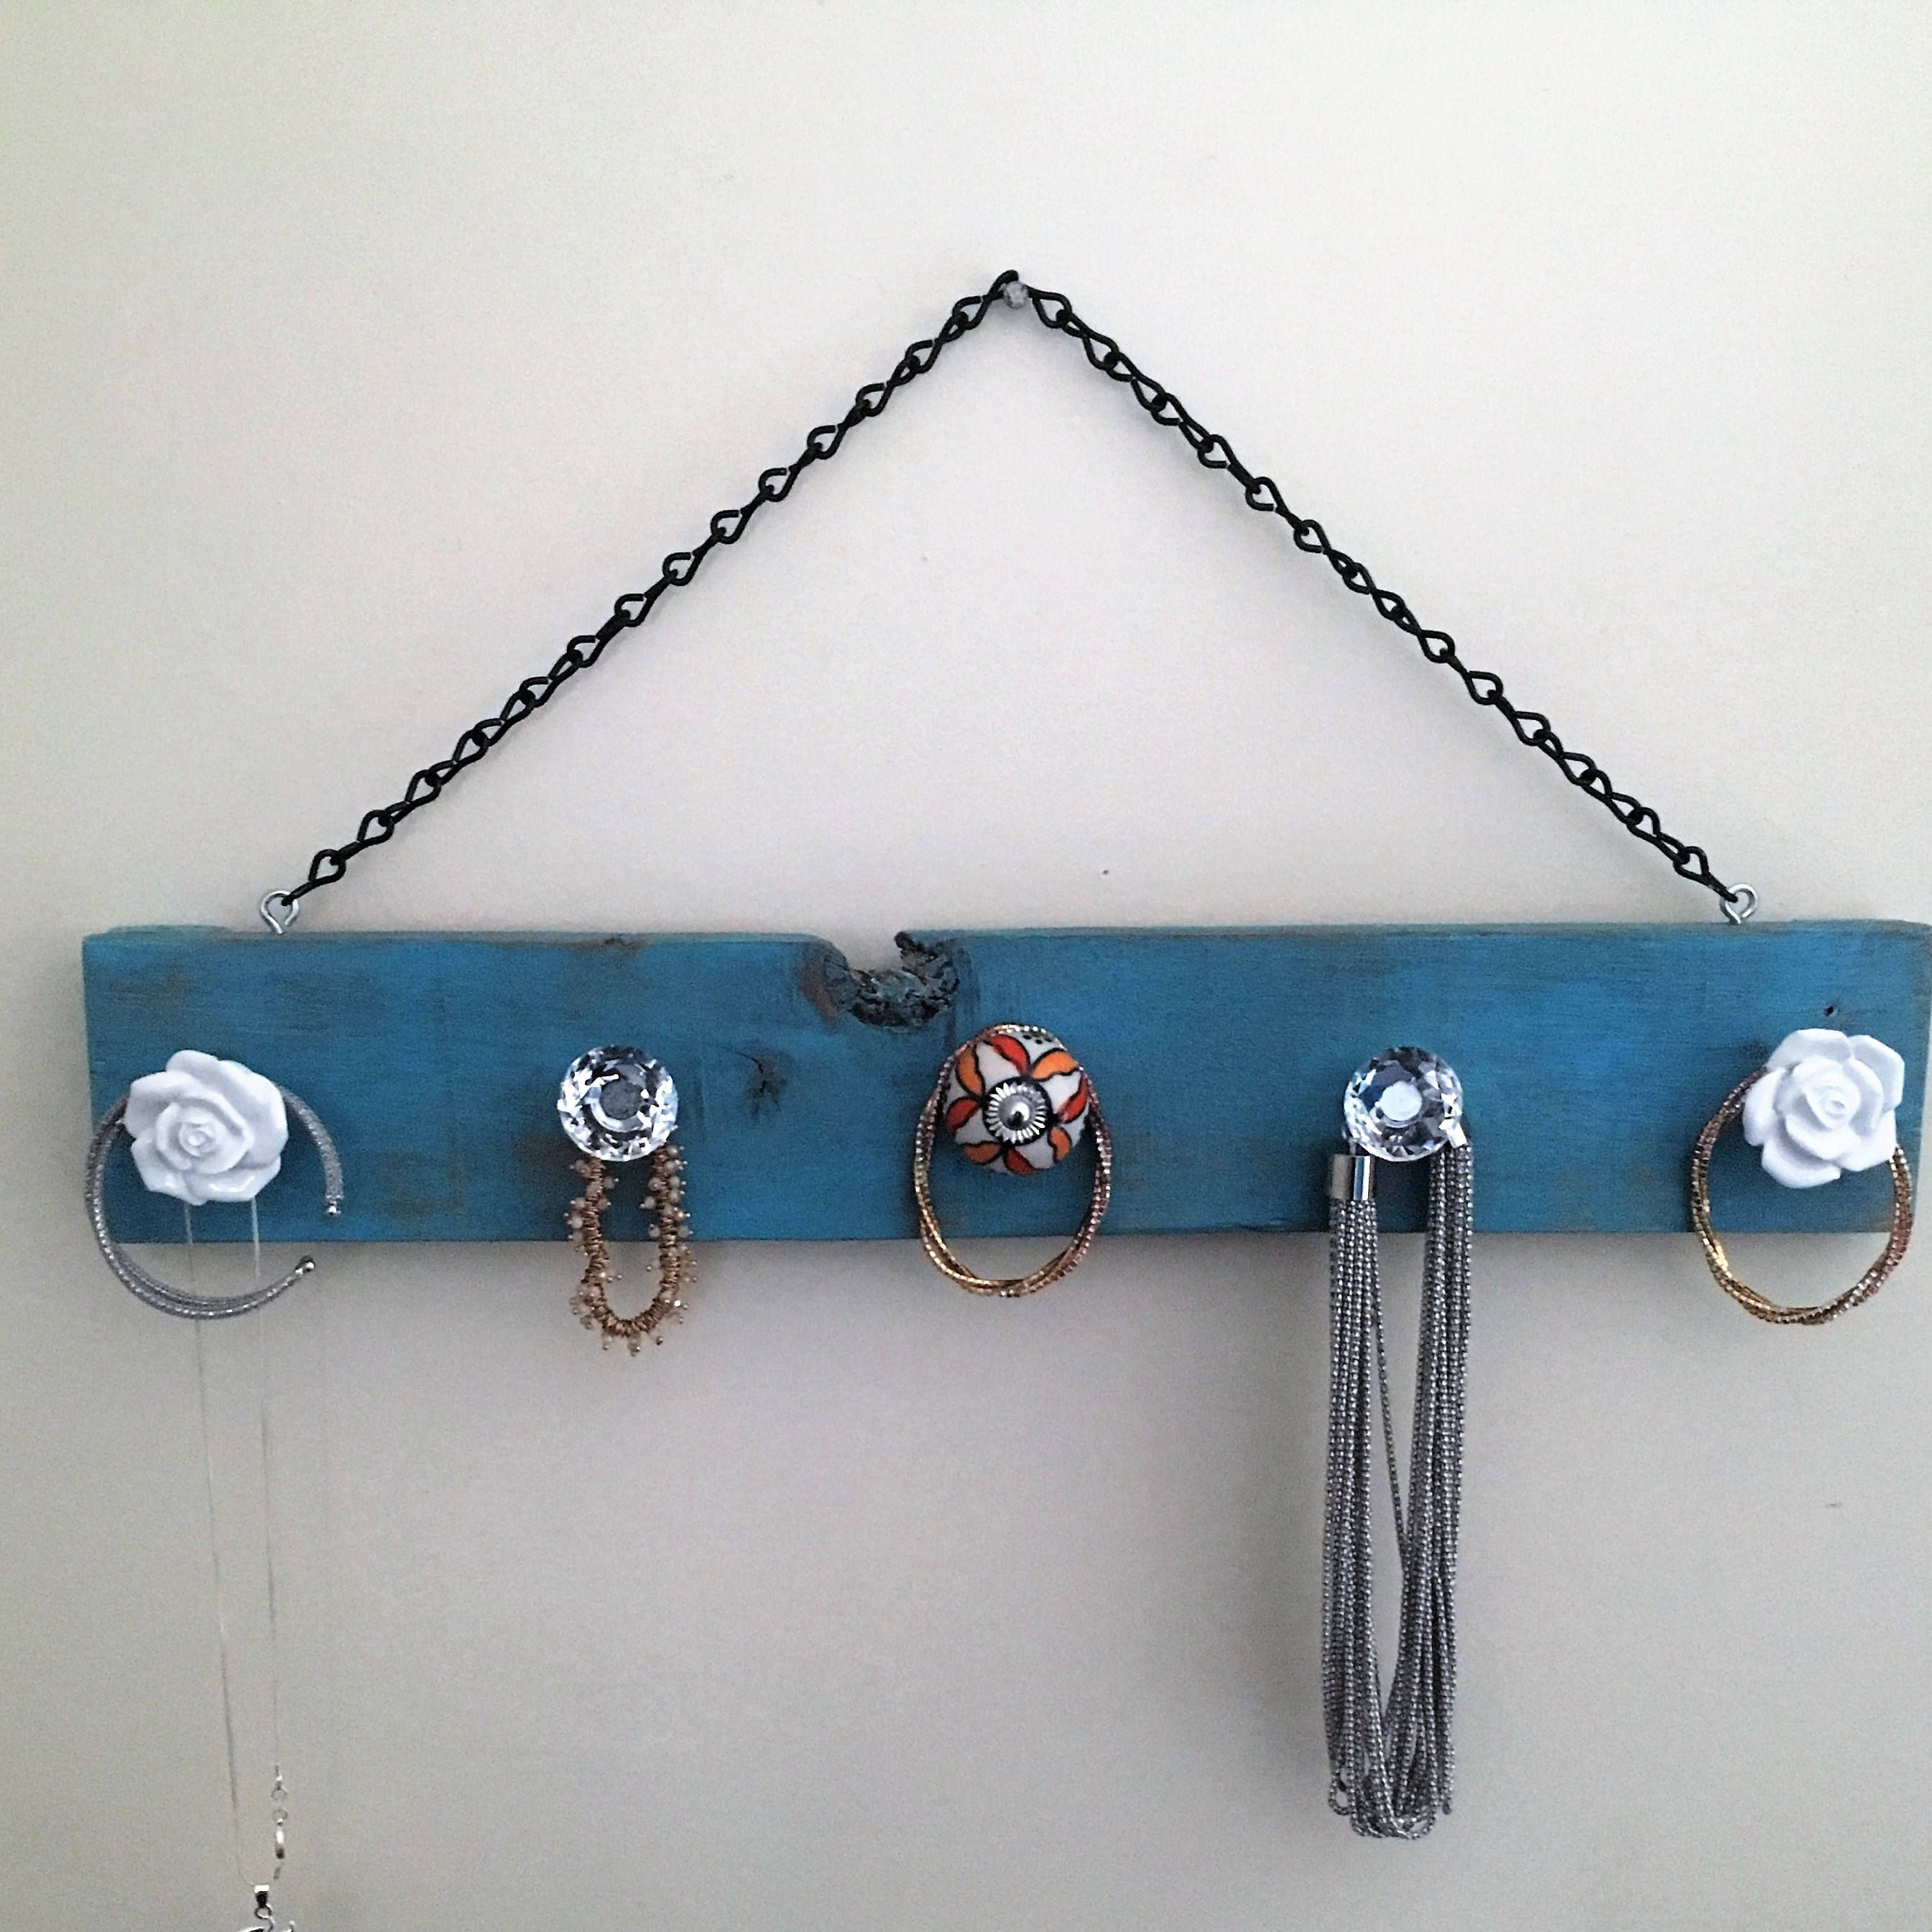 Jewelry Holder Hanging Jewelry and Accessory Organizer Rustic Teal